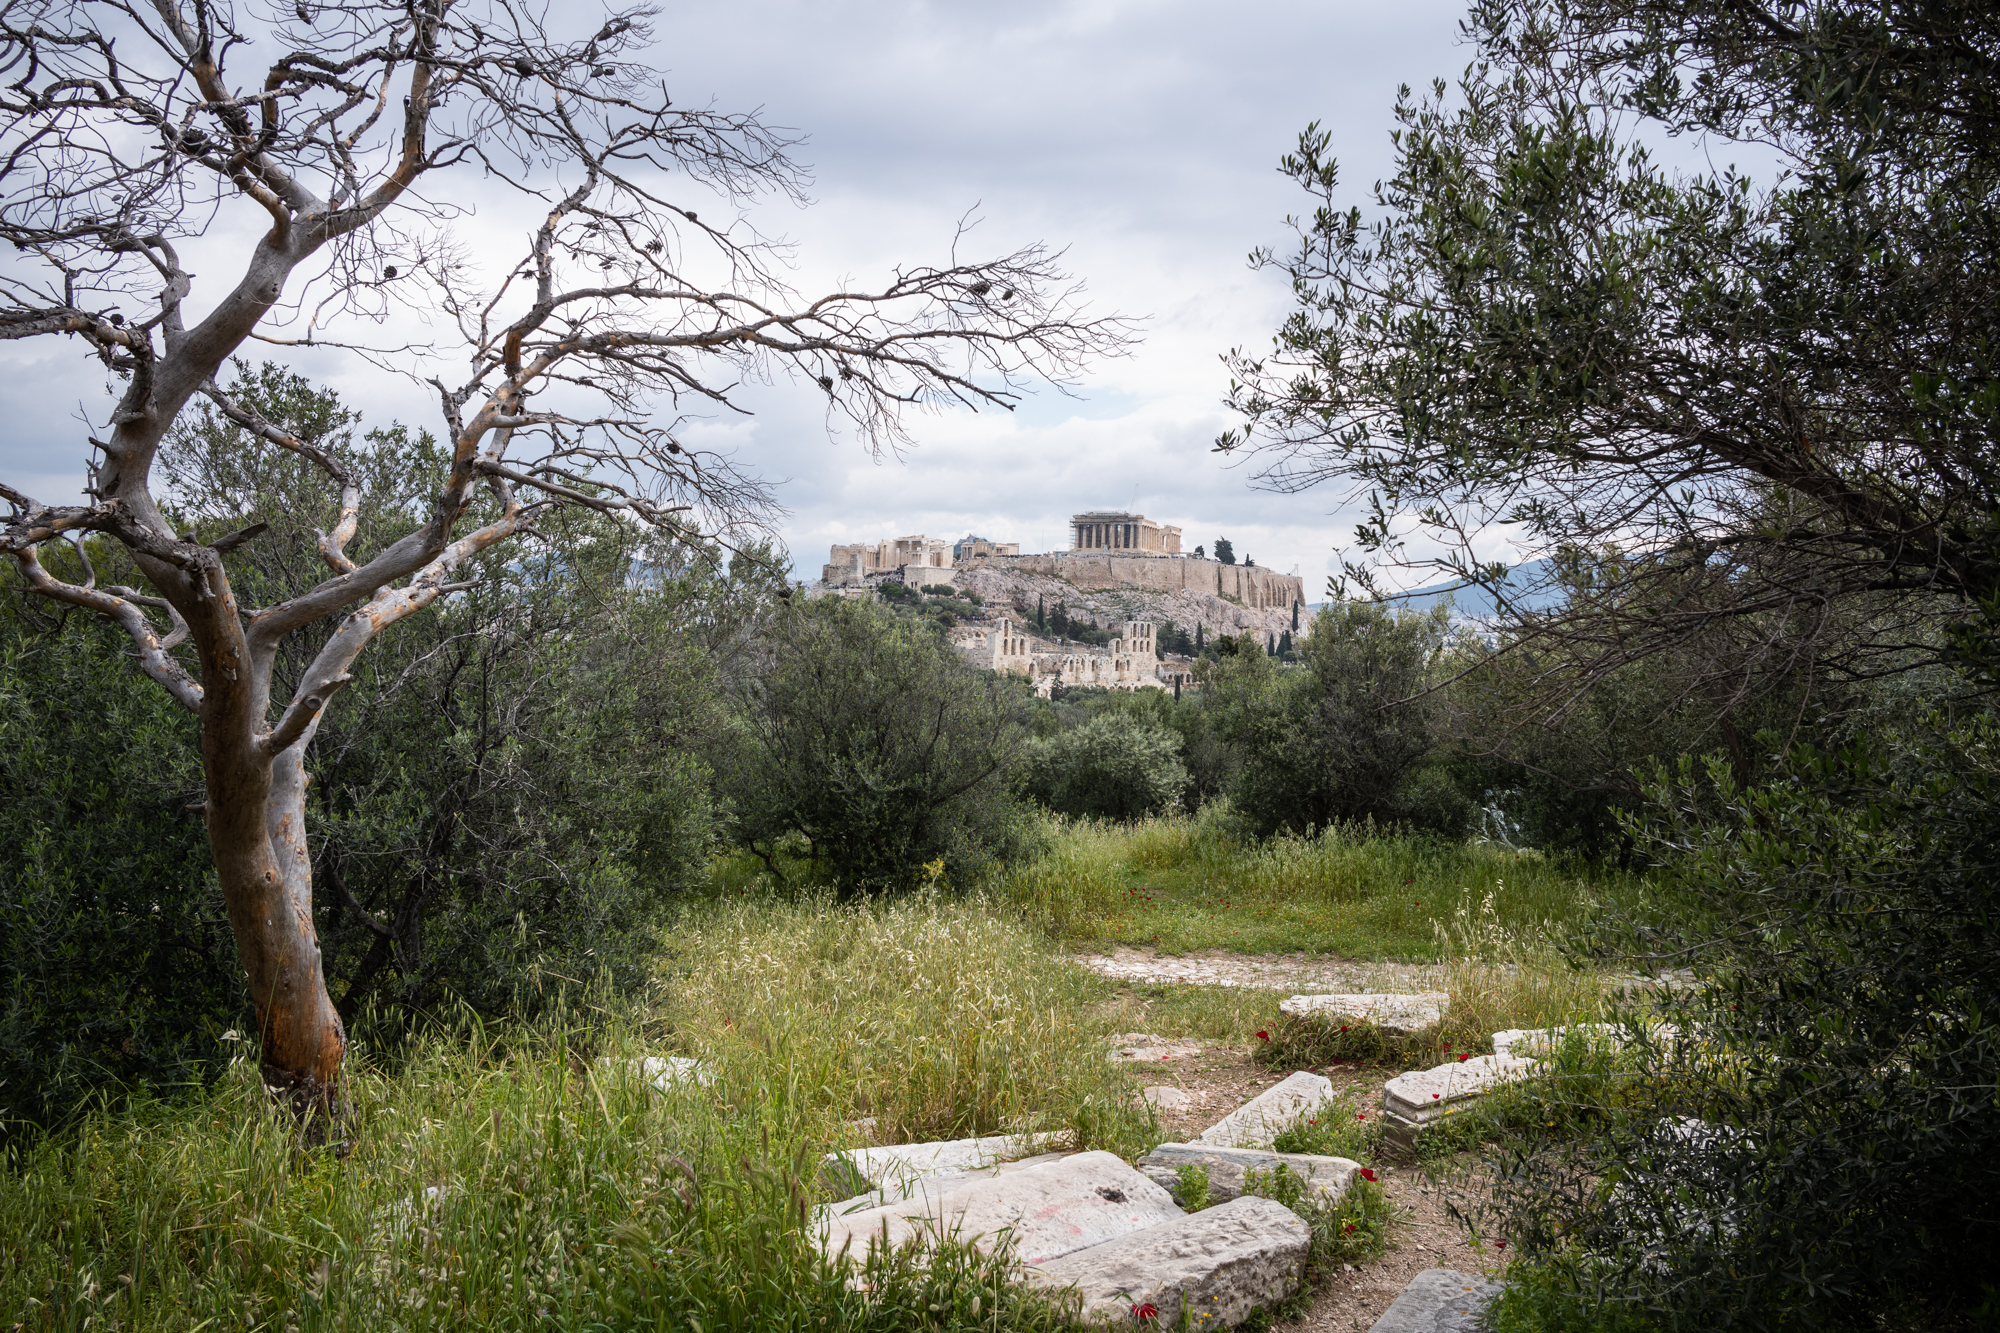 Different view of the Acropolis